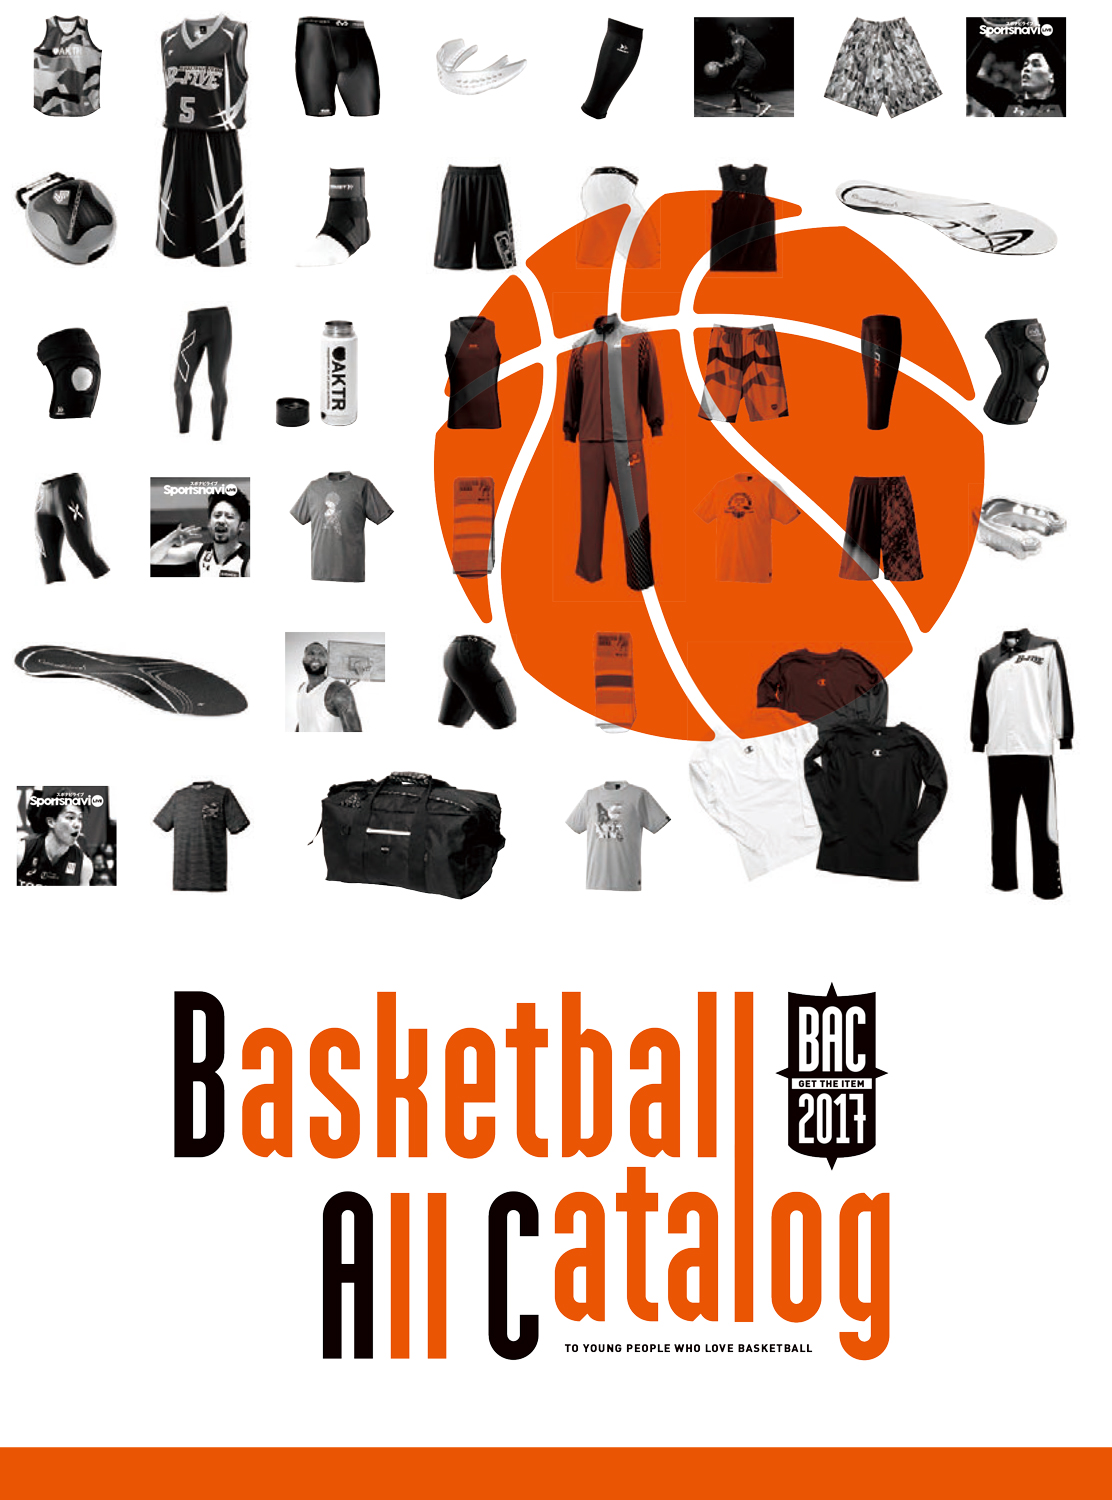 Basketball_All_Catalog_cover